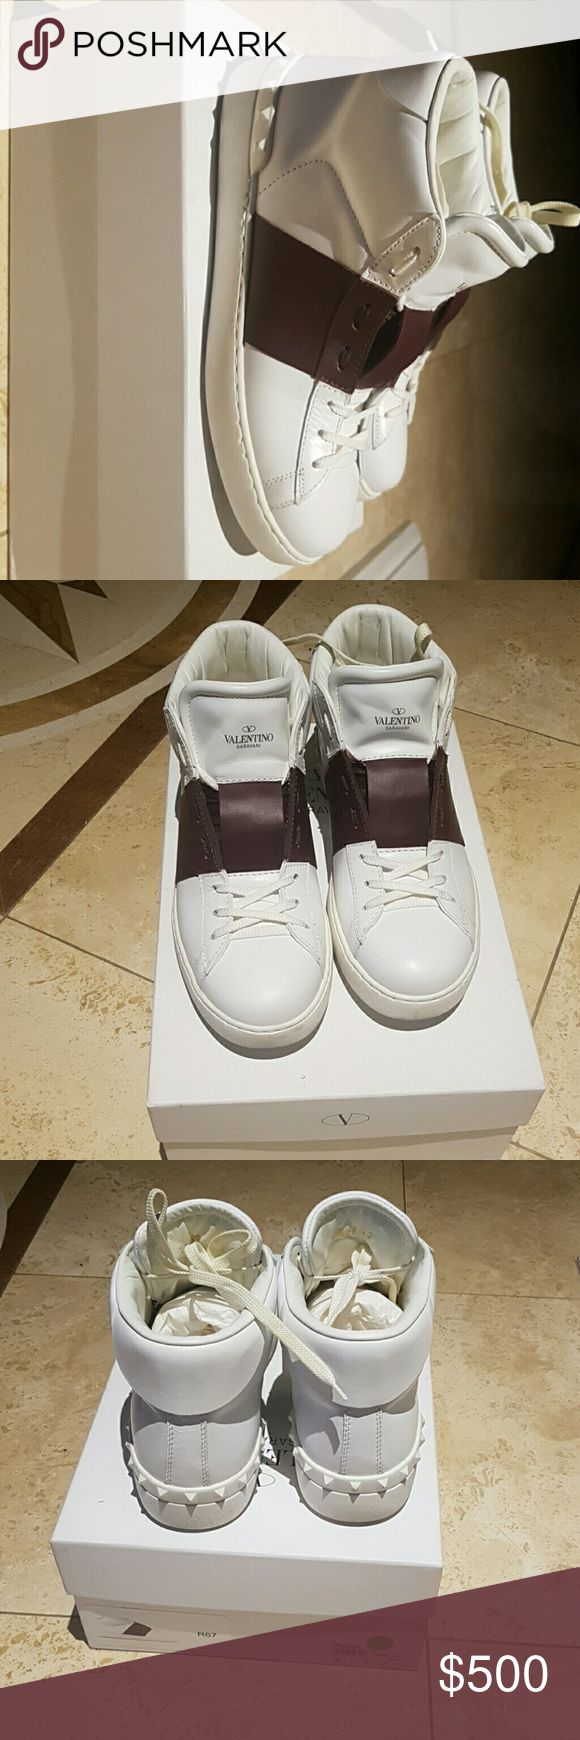 Valentino High Top It was too big for me Valentino Garavani Shoes Sneakers